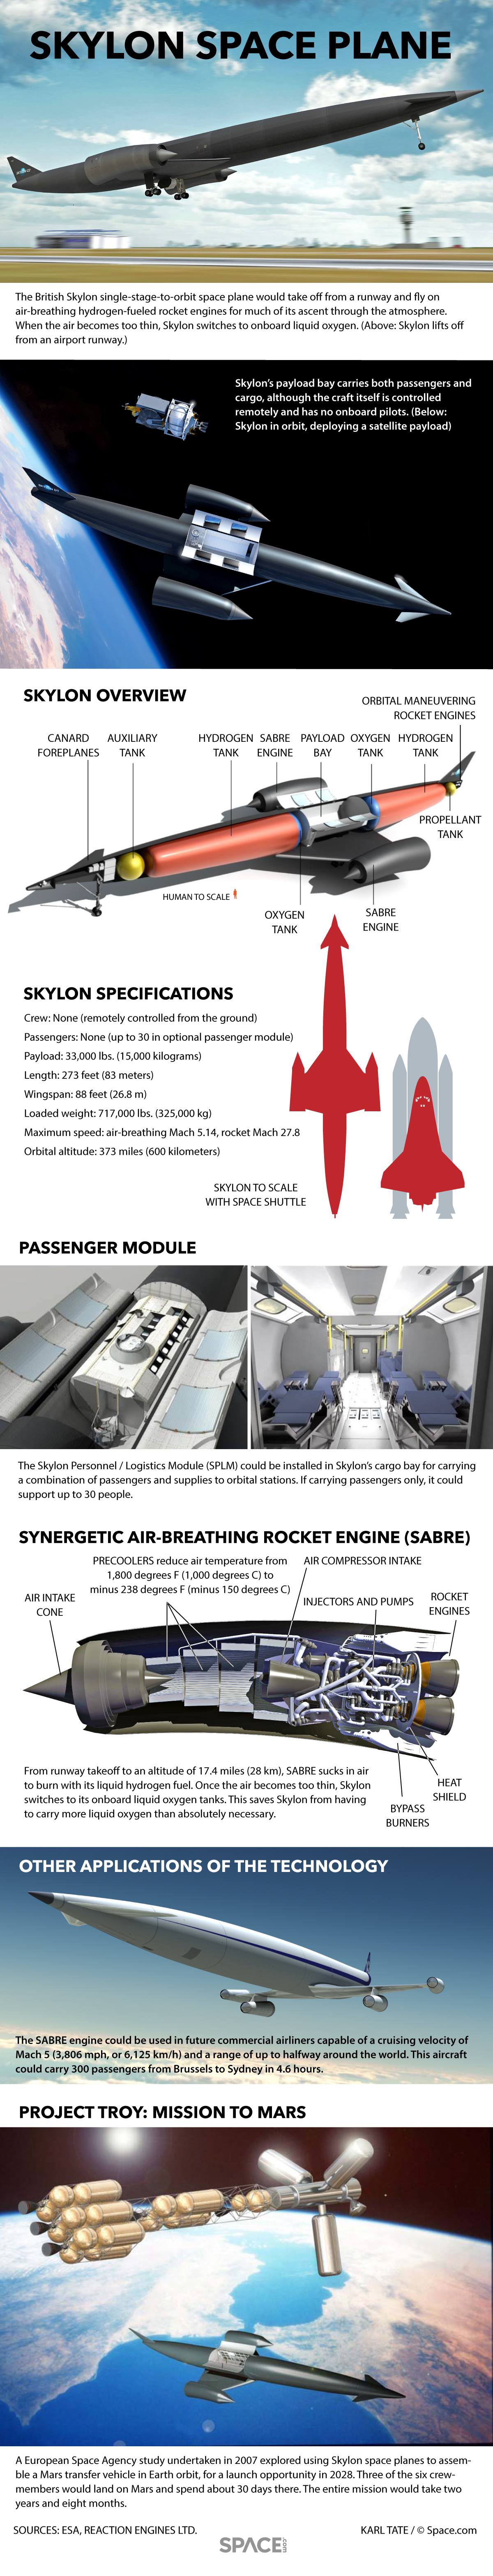 Details of the Skylon space plane.